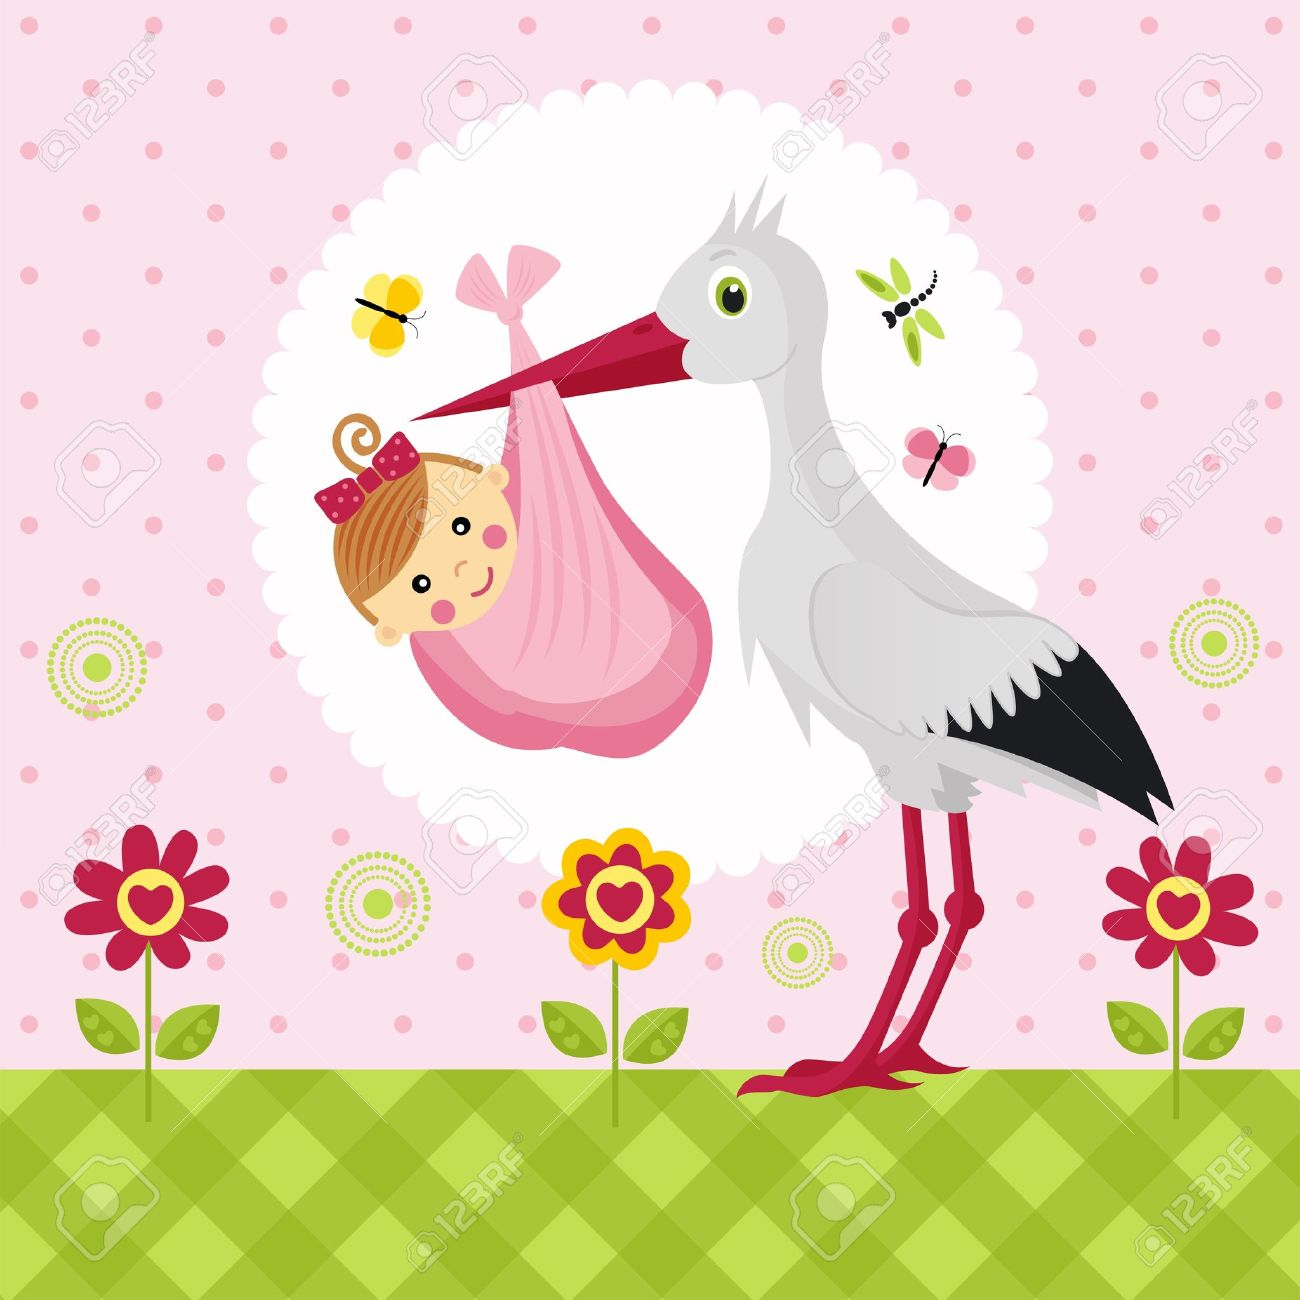 Stork With A Baby Girl In A Bag Royalty Free Cliparts, Vectors ... clipart transparent library